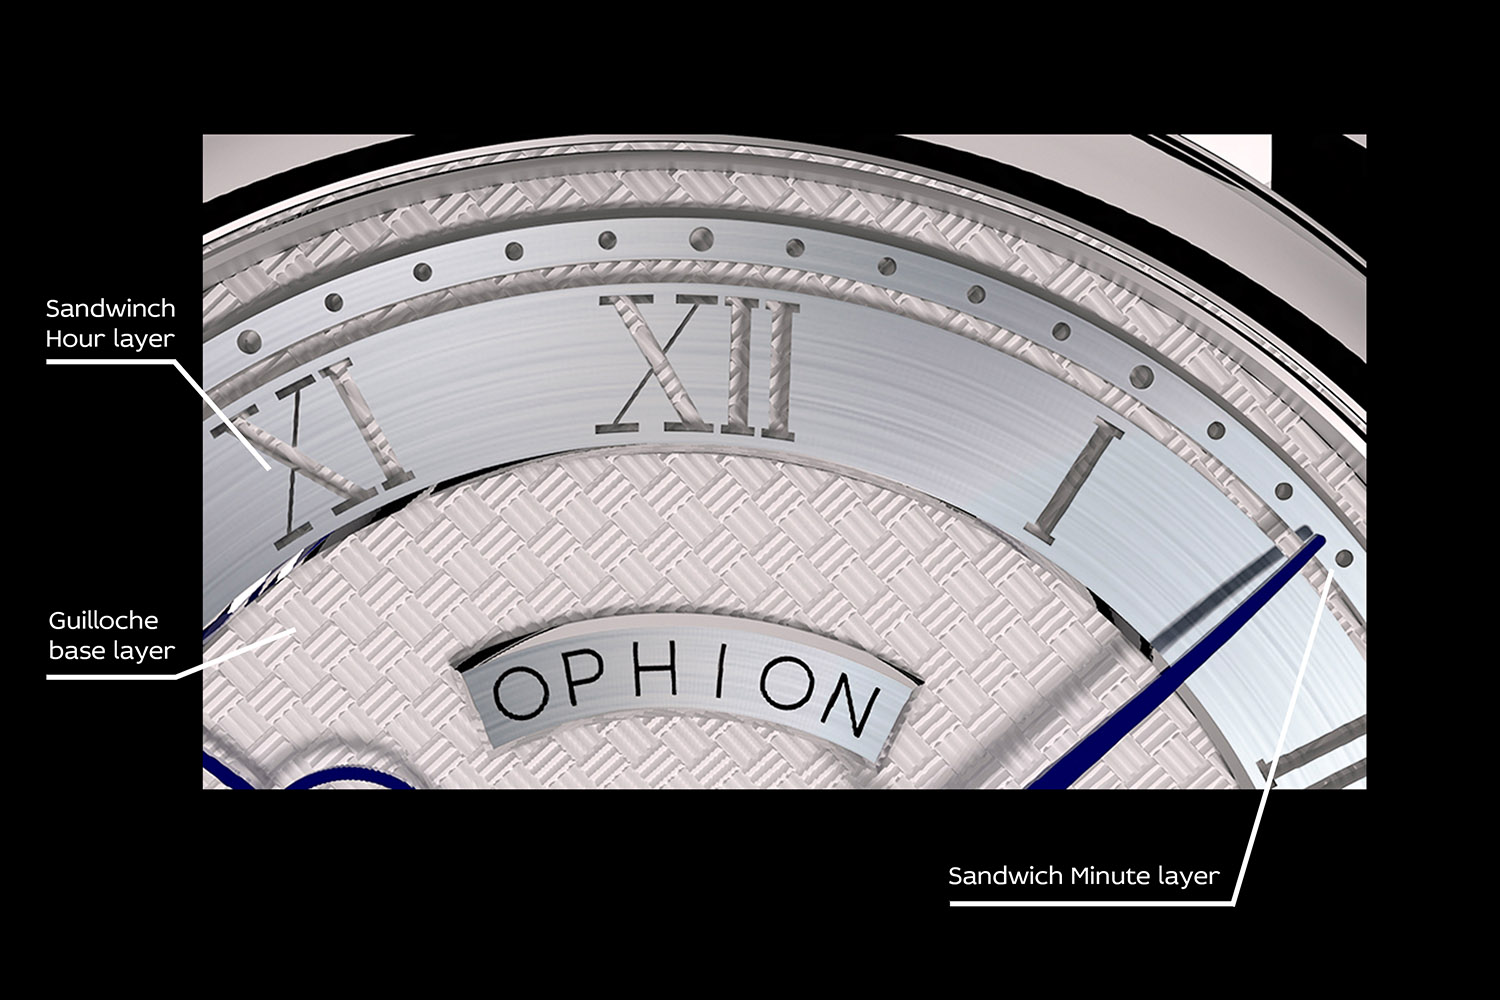 Ophion OPH 786 Watch